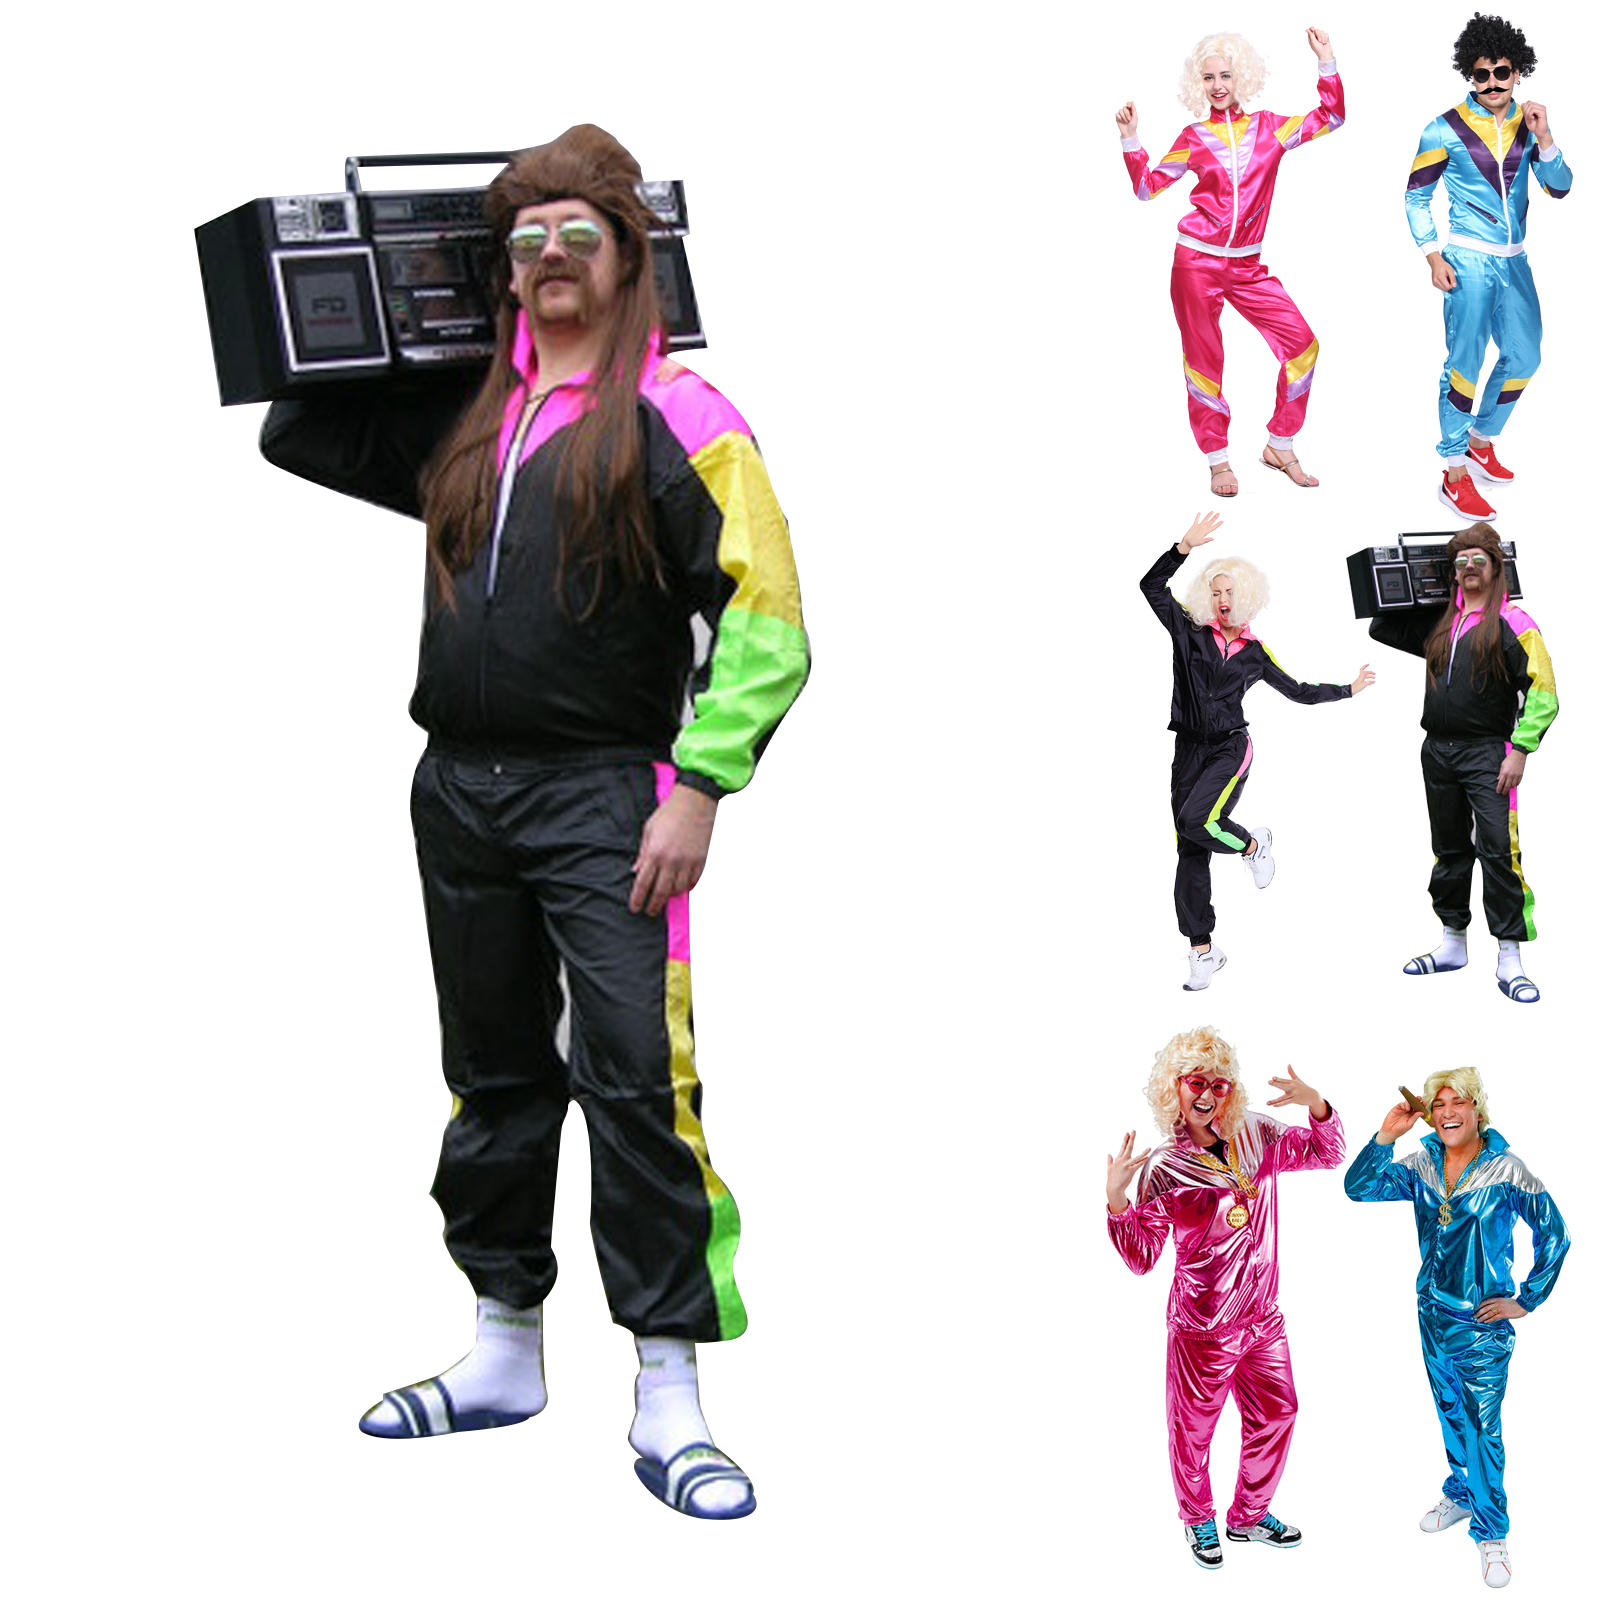 d guisement costume tenue survetement annee 80 1980s unisexe 118 218 hip hop ebay. Black Bedroom Furniture Sets. Home Design Ideas